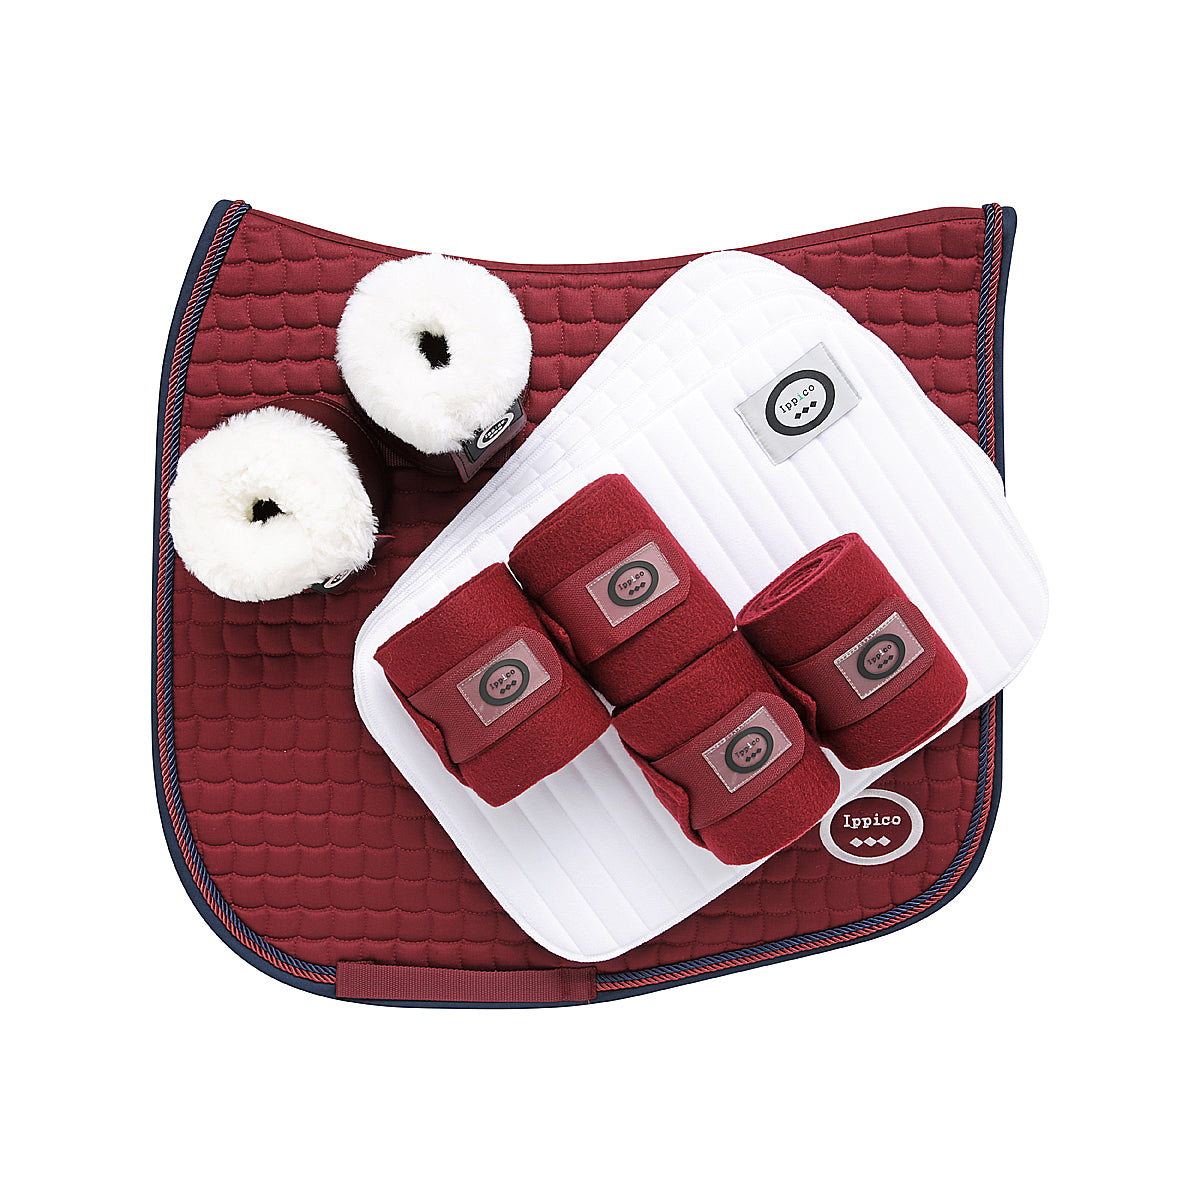 SADDLE PAD SETS